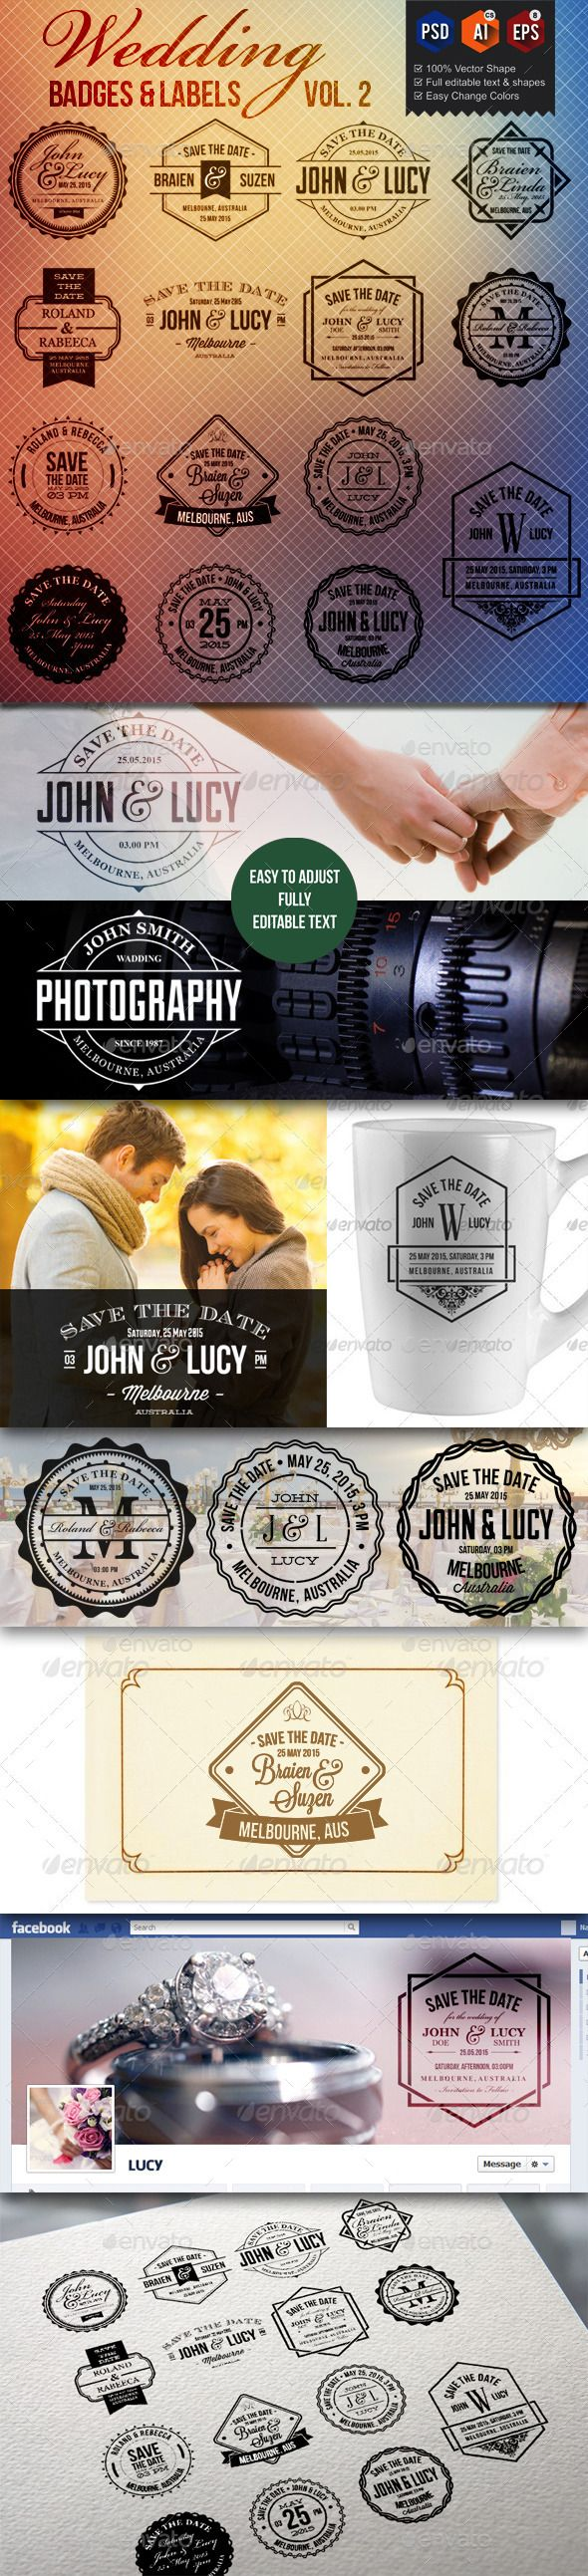 15 Wedding Badge Labels   Buy and Download: http://graphicriver.net/item/15-wedding-badge-labels-v2/9929292?ref=ksioks